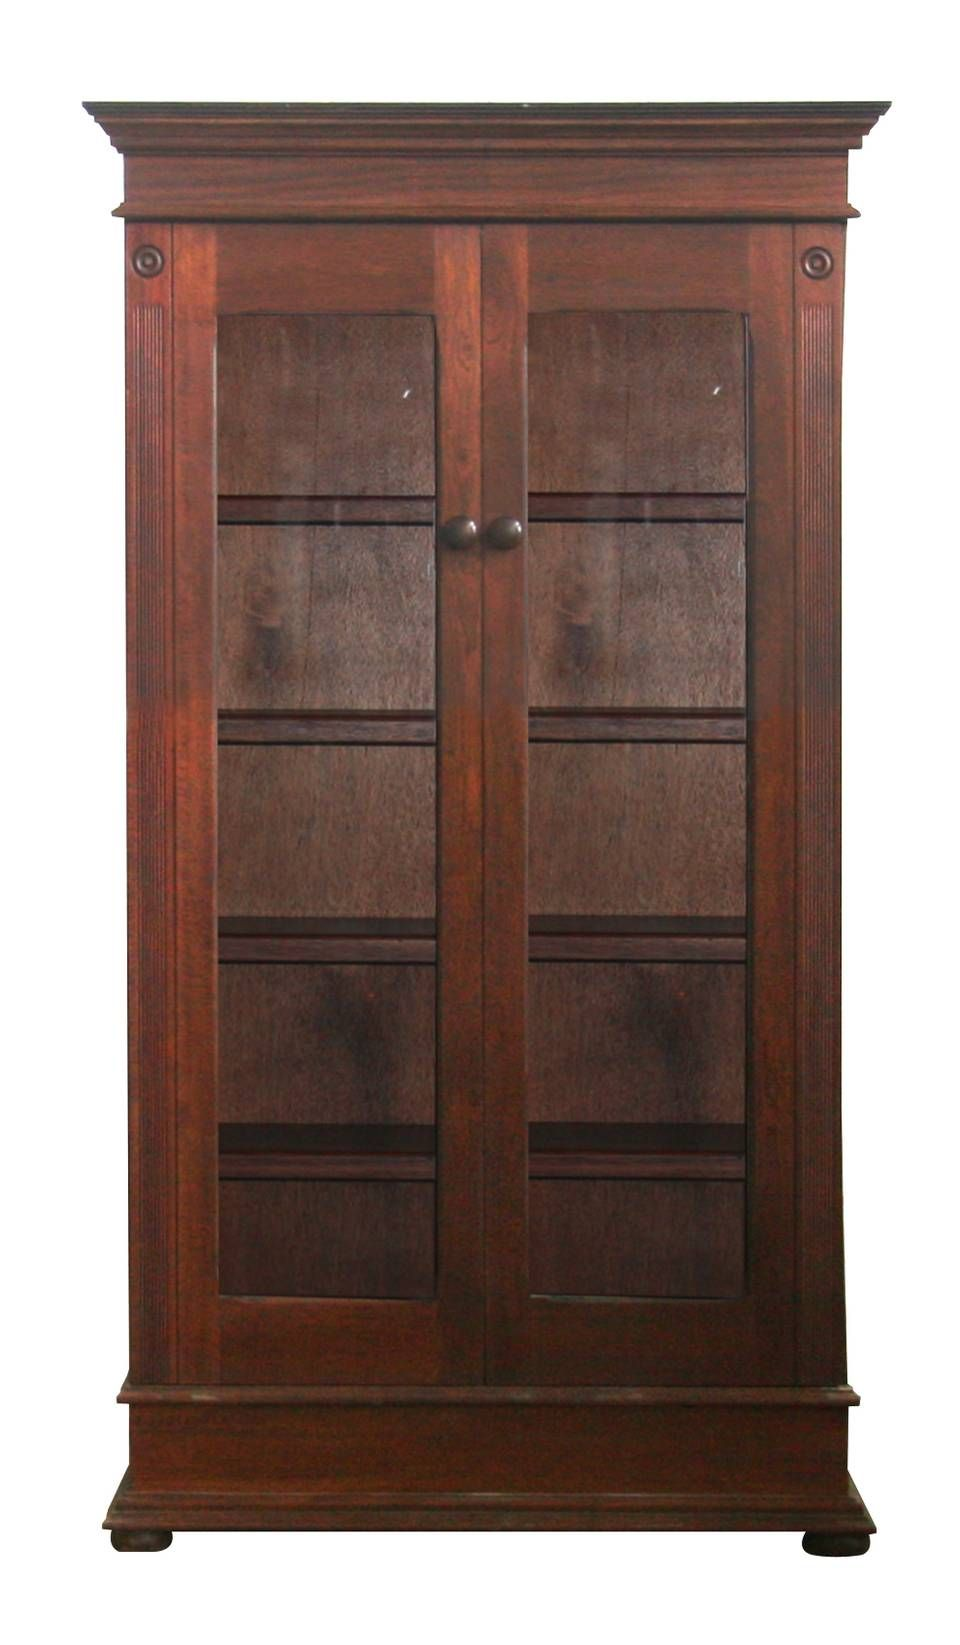 lampung tall bookcase with glass doors | wetherlys | home office